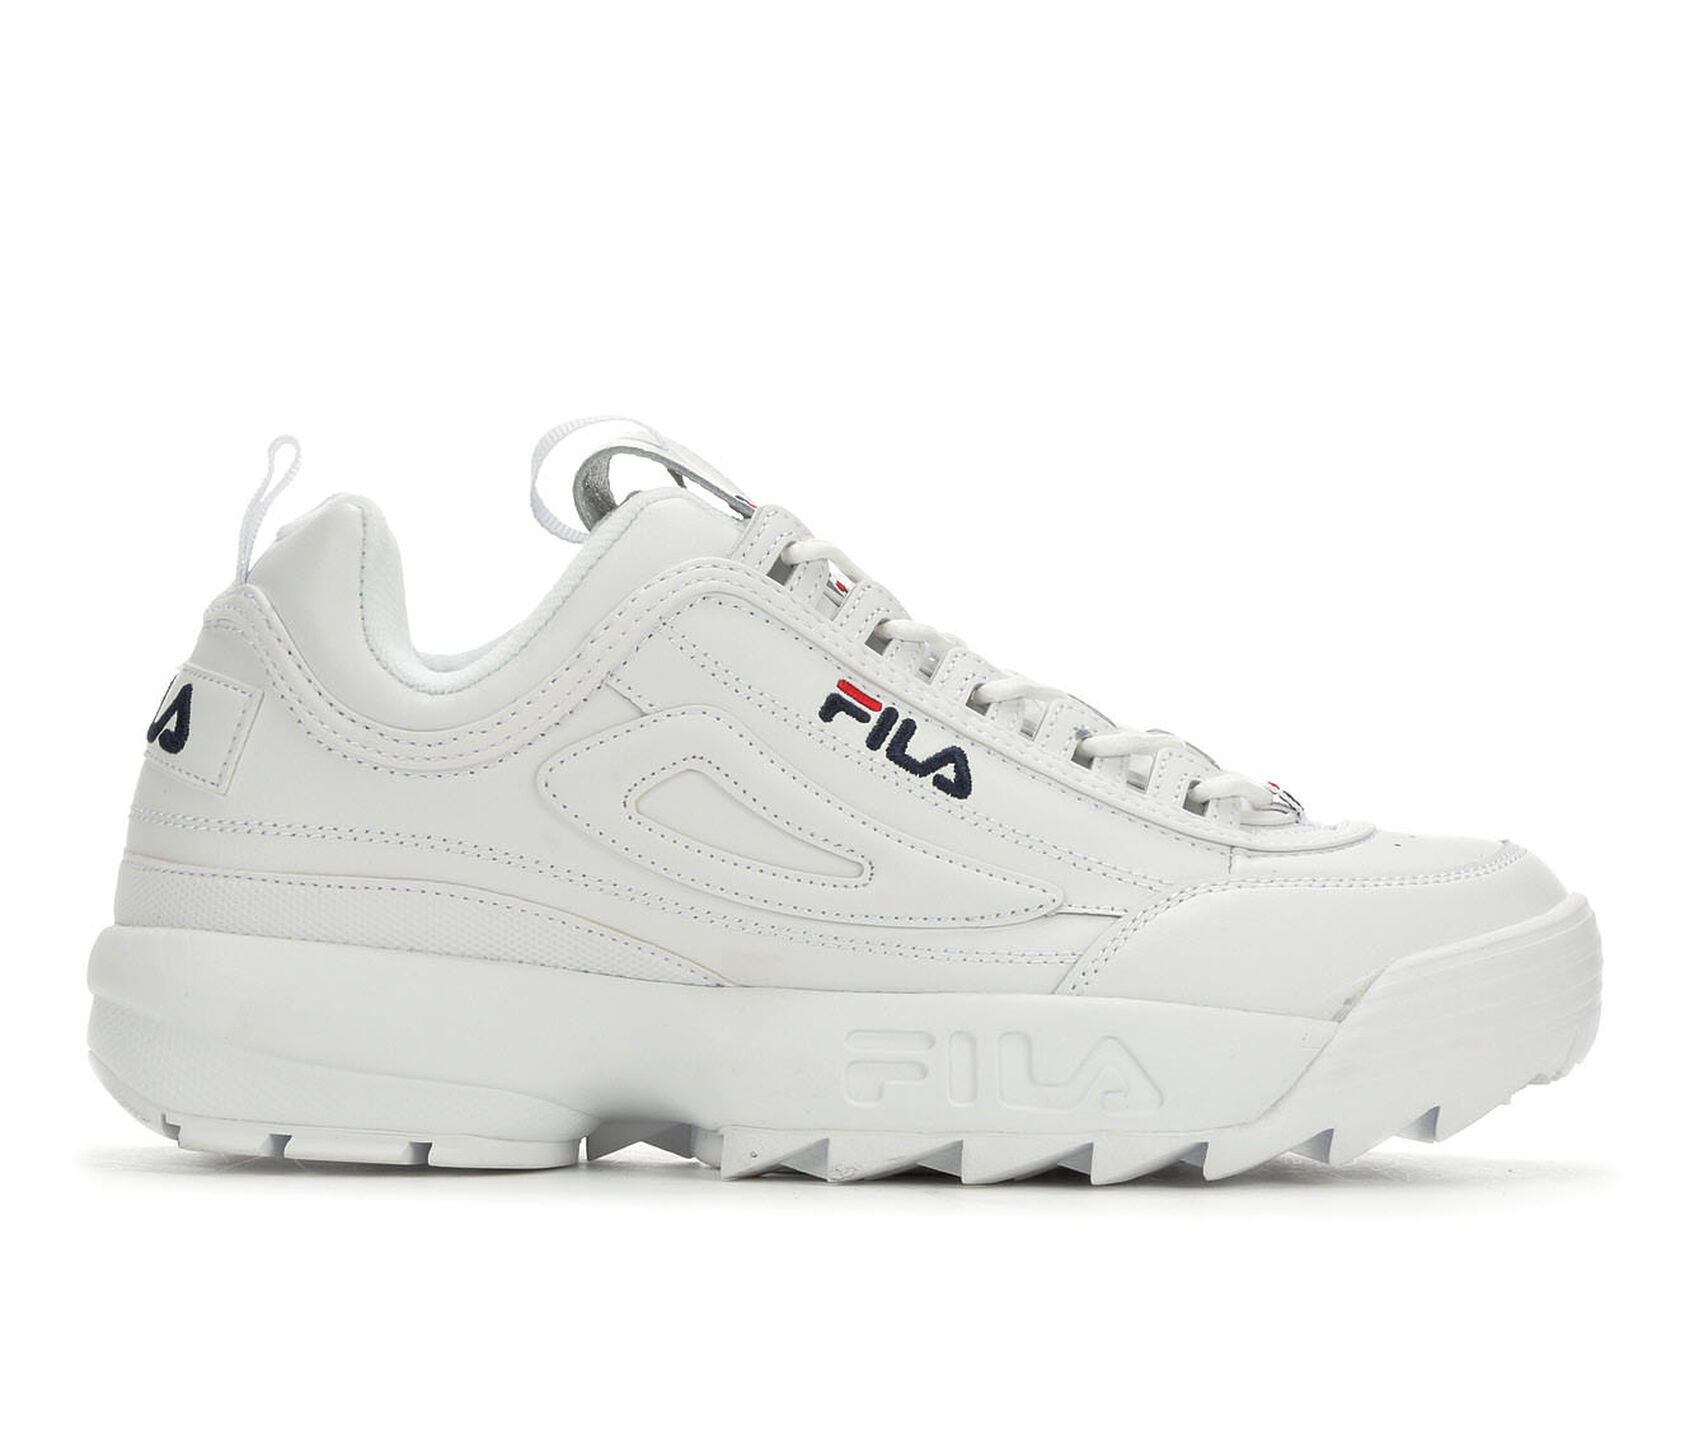 16f541e59faf ... Fila Disruptor II Premium Sneakers. Previous